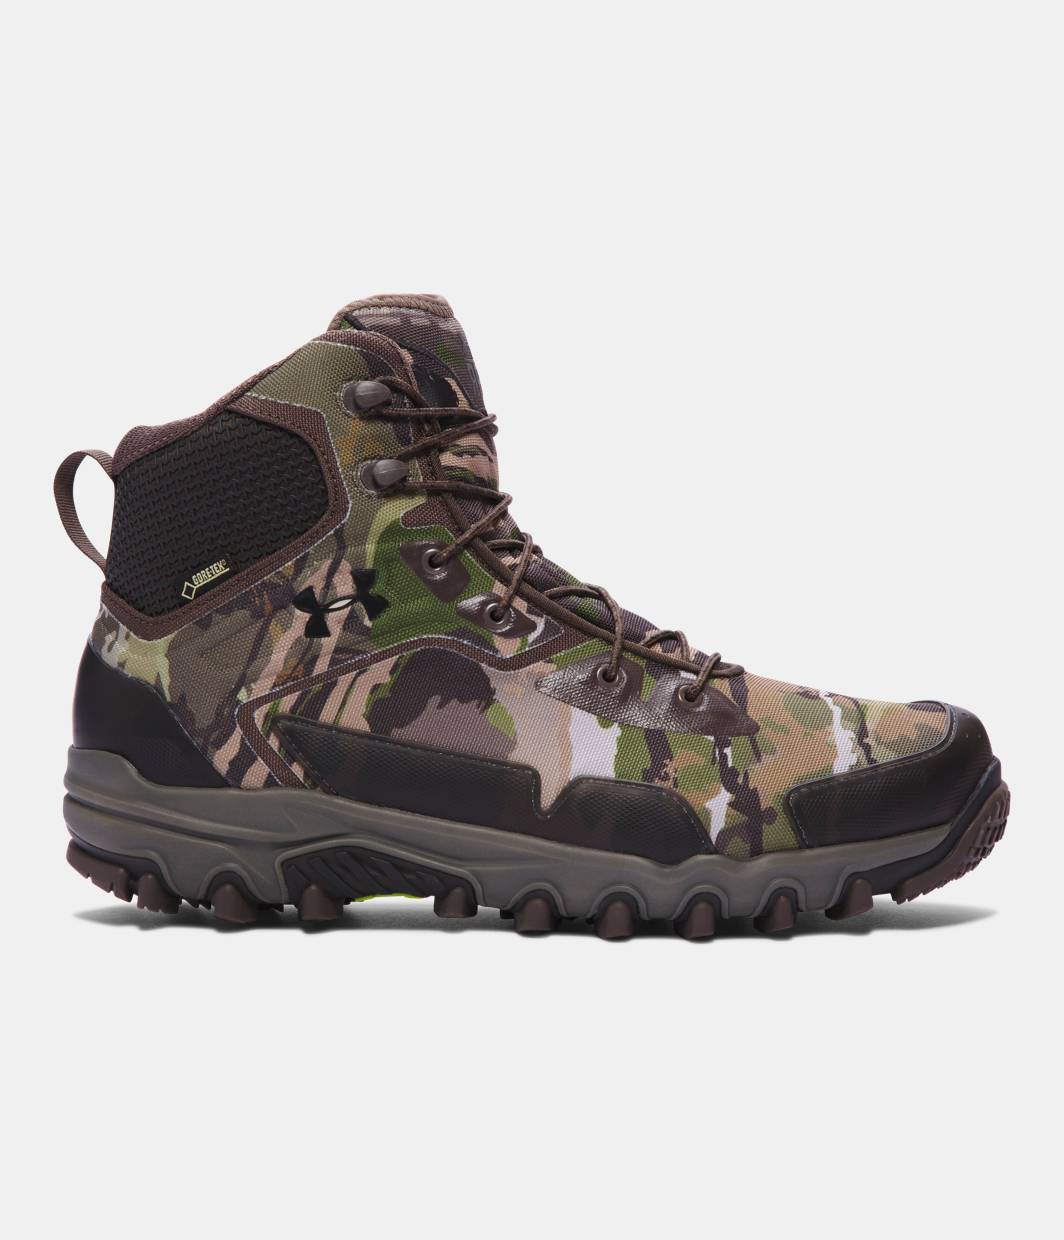 Men S Ua Ridge Reaper Extreme Hunting Boots Under Armour Us